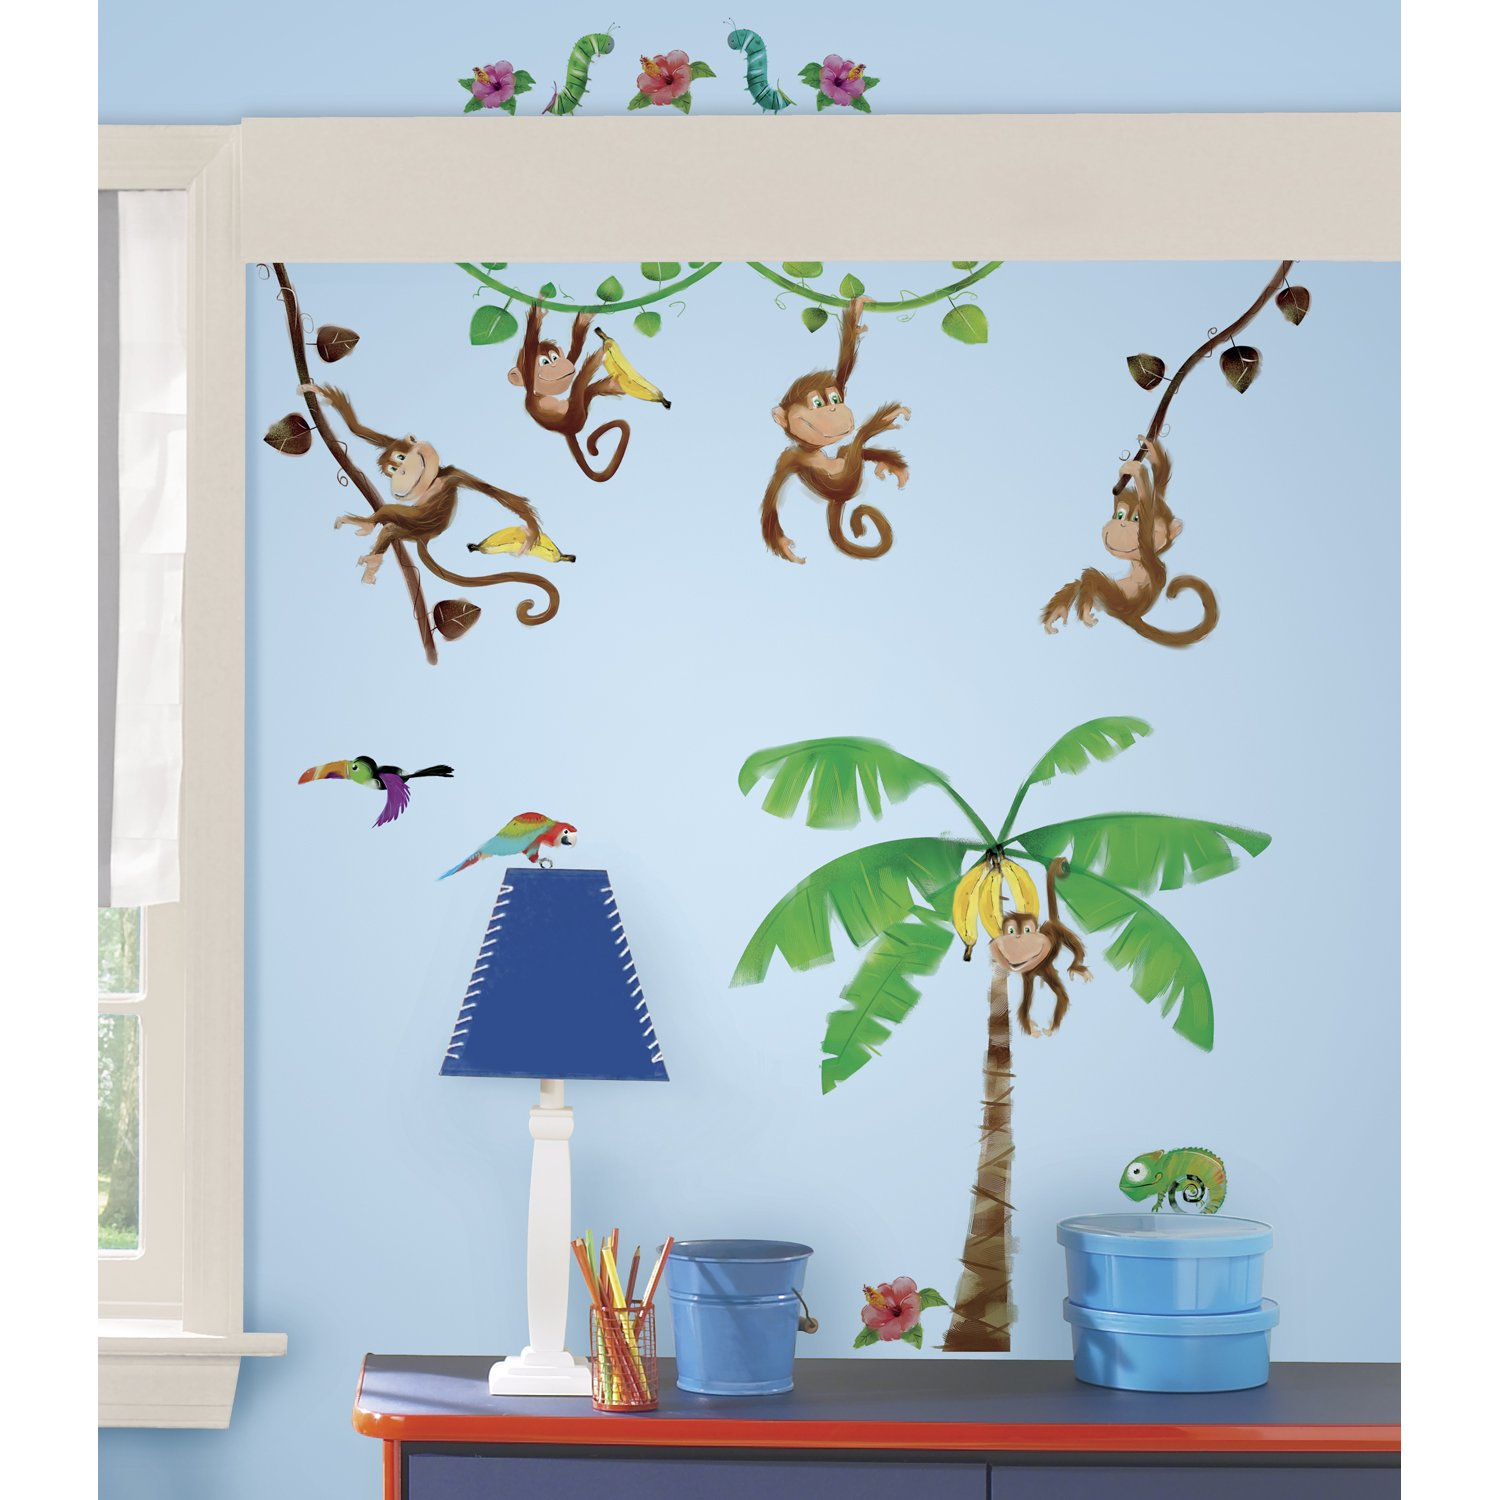 RoomMates Repositionable Childrens Wall Stickers Monkey Business:  Amazon.co.uk: Kitchen U0026 Home Part 4